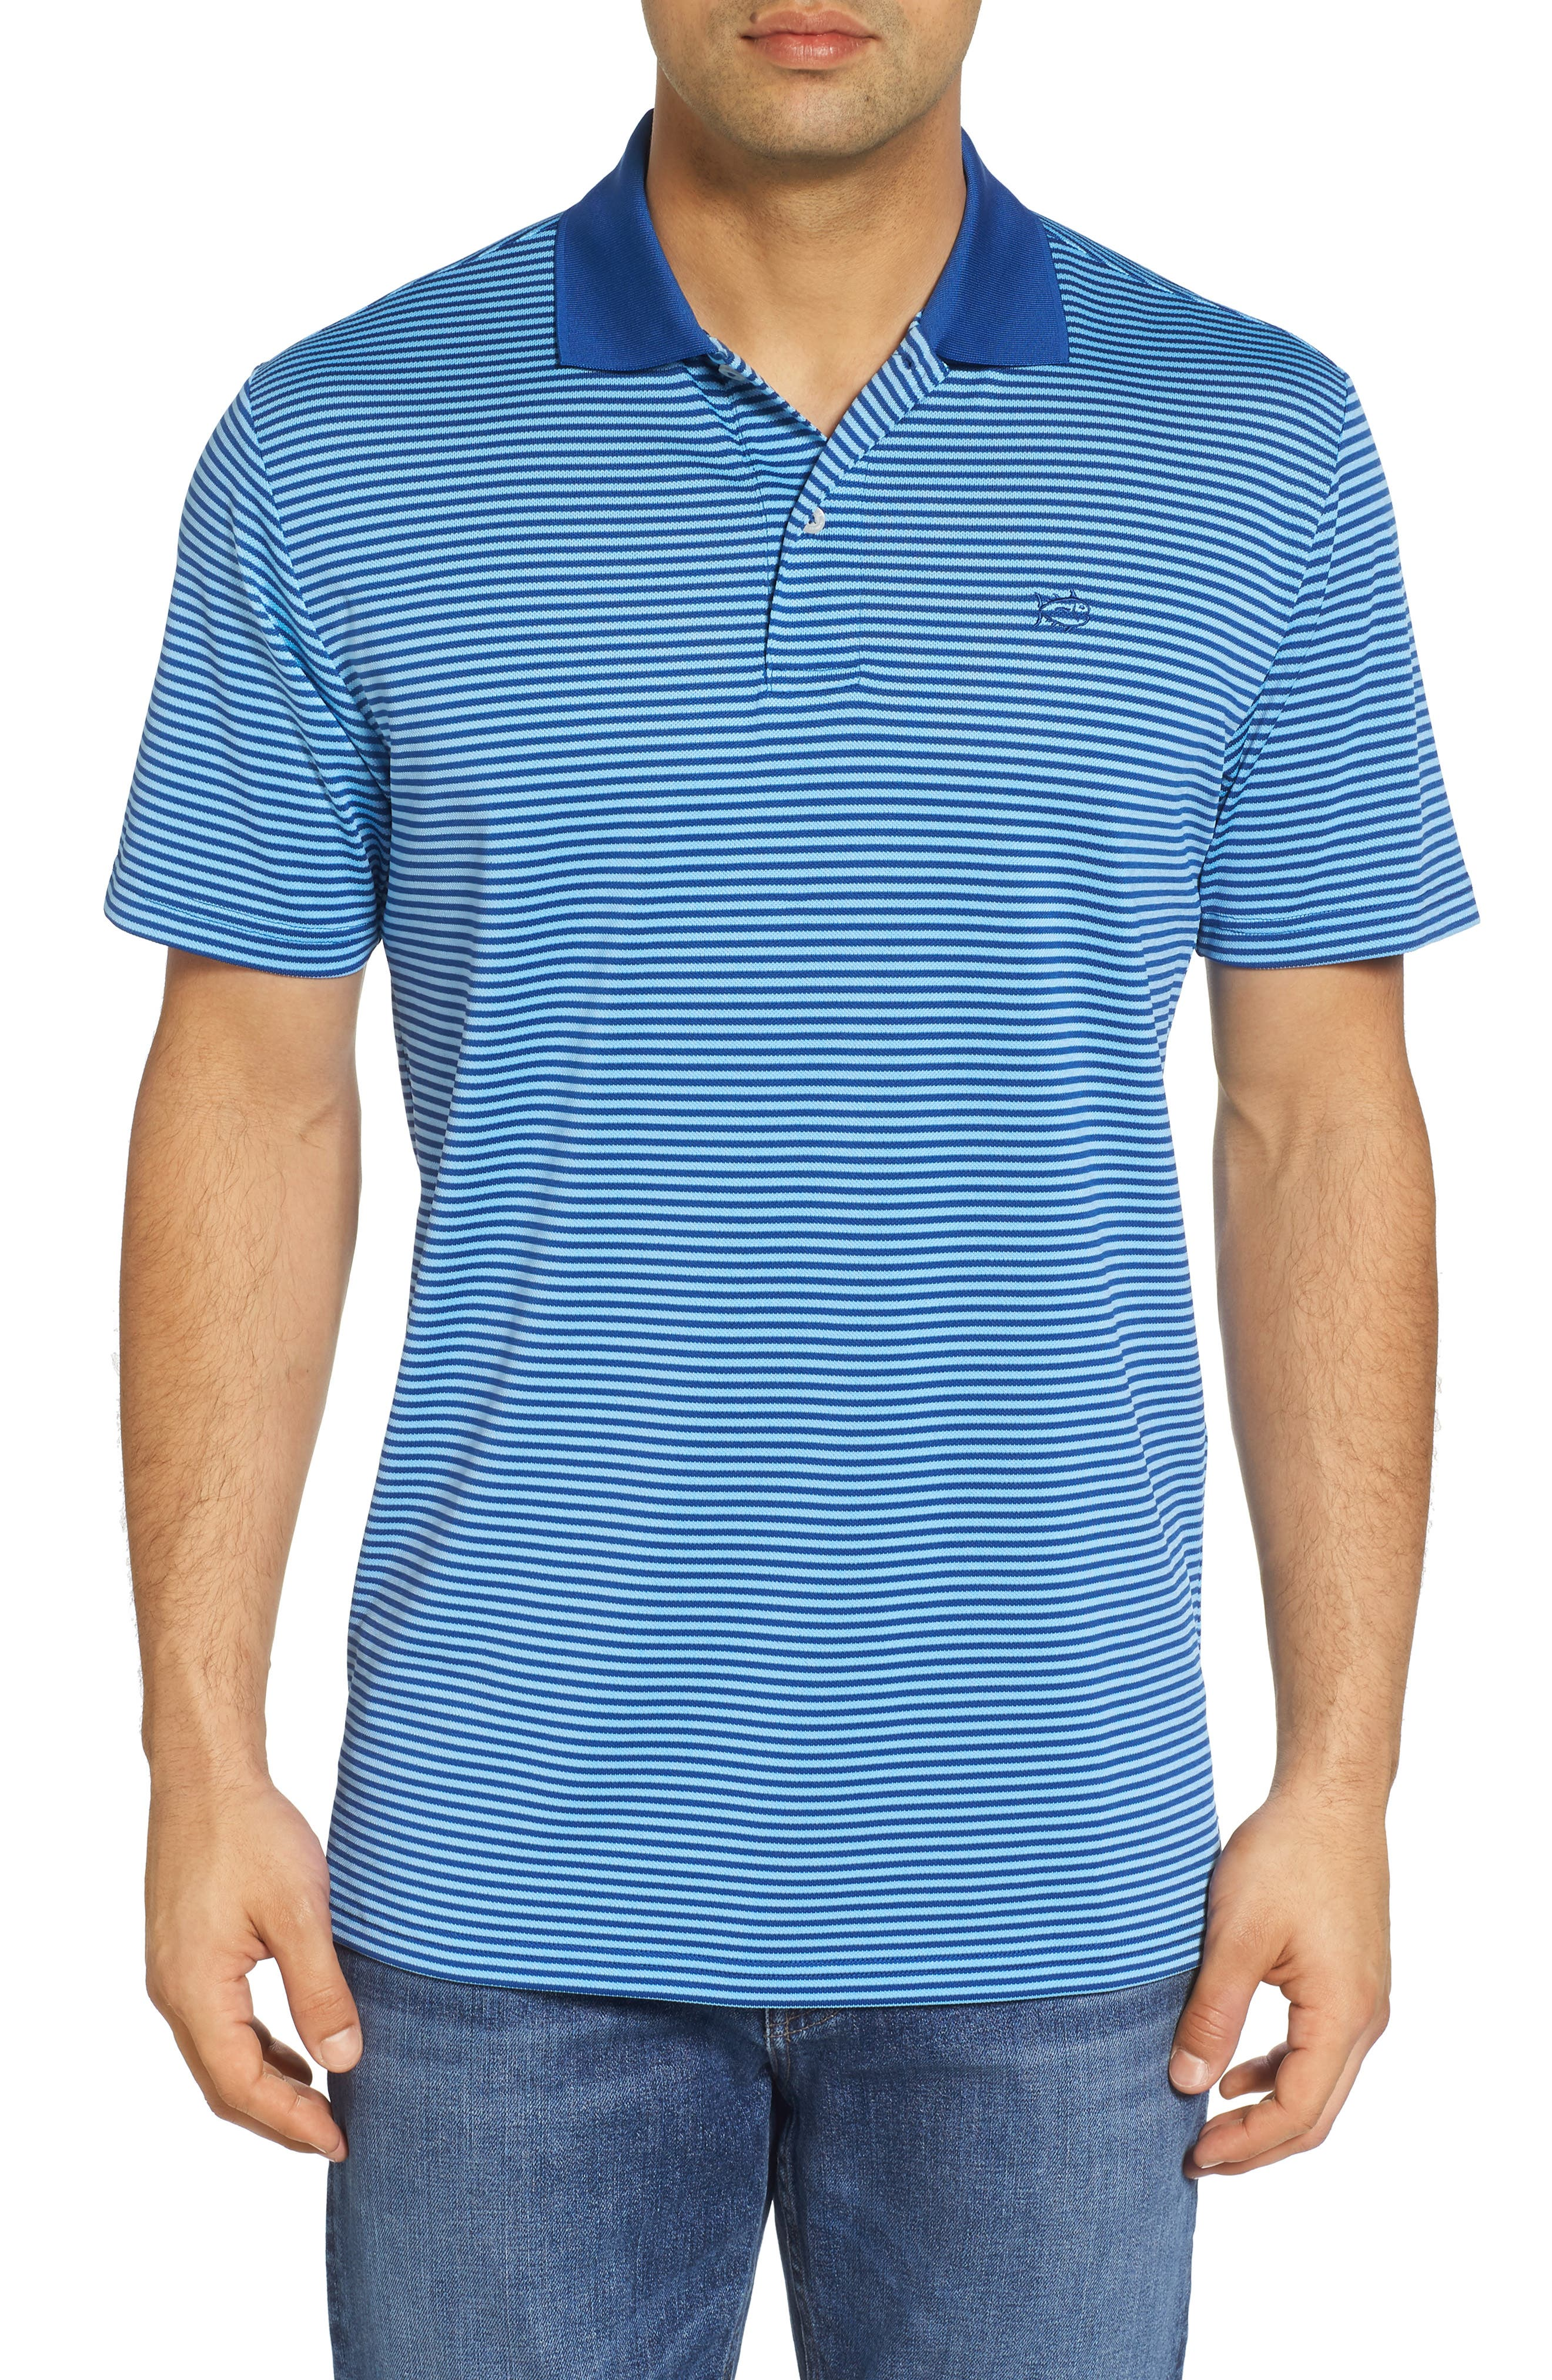 Main Image - Southern Tide Regular Fit Stripe Stretch Polo